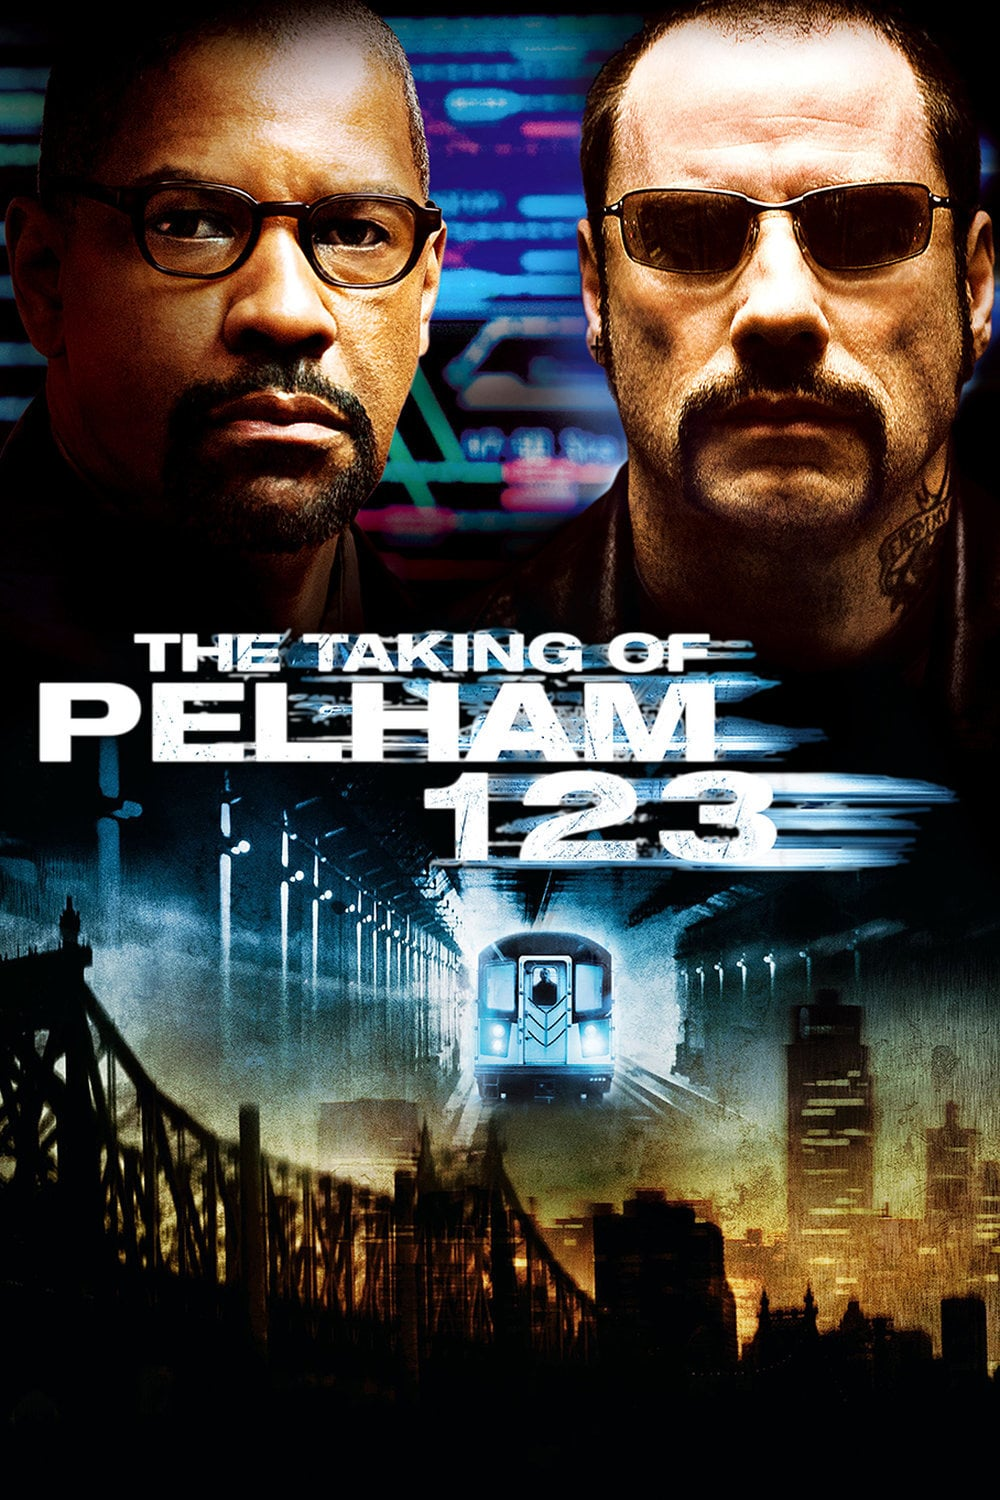 THE TAKING OF PELHAM 123 (2009) TAMIL DUBBED HD